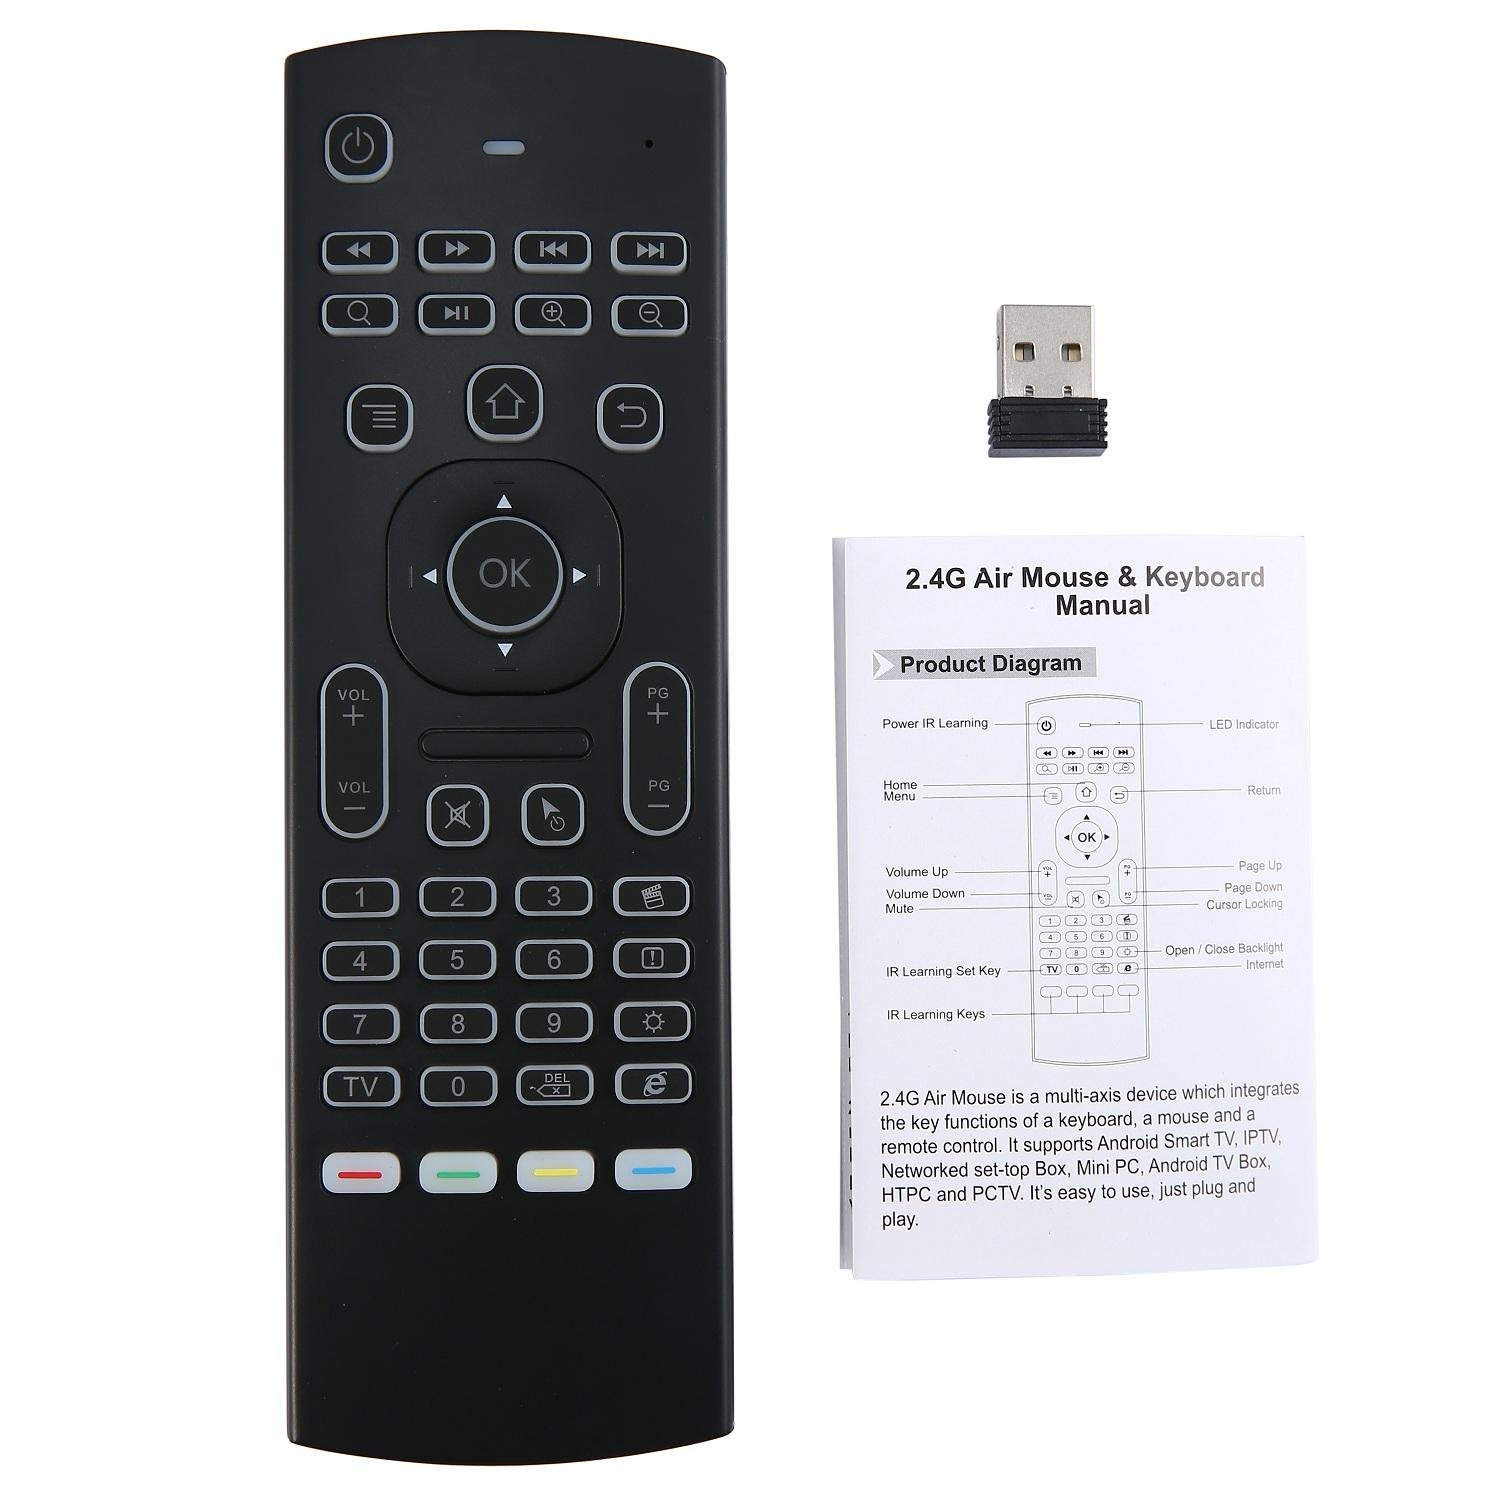 MX3 Backlight Airmouse afstandsbediening, toetsenbord draadloze onida tv afstandsbediening Voor Android TV Box